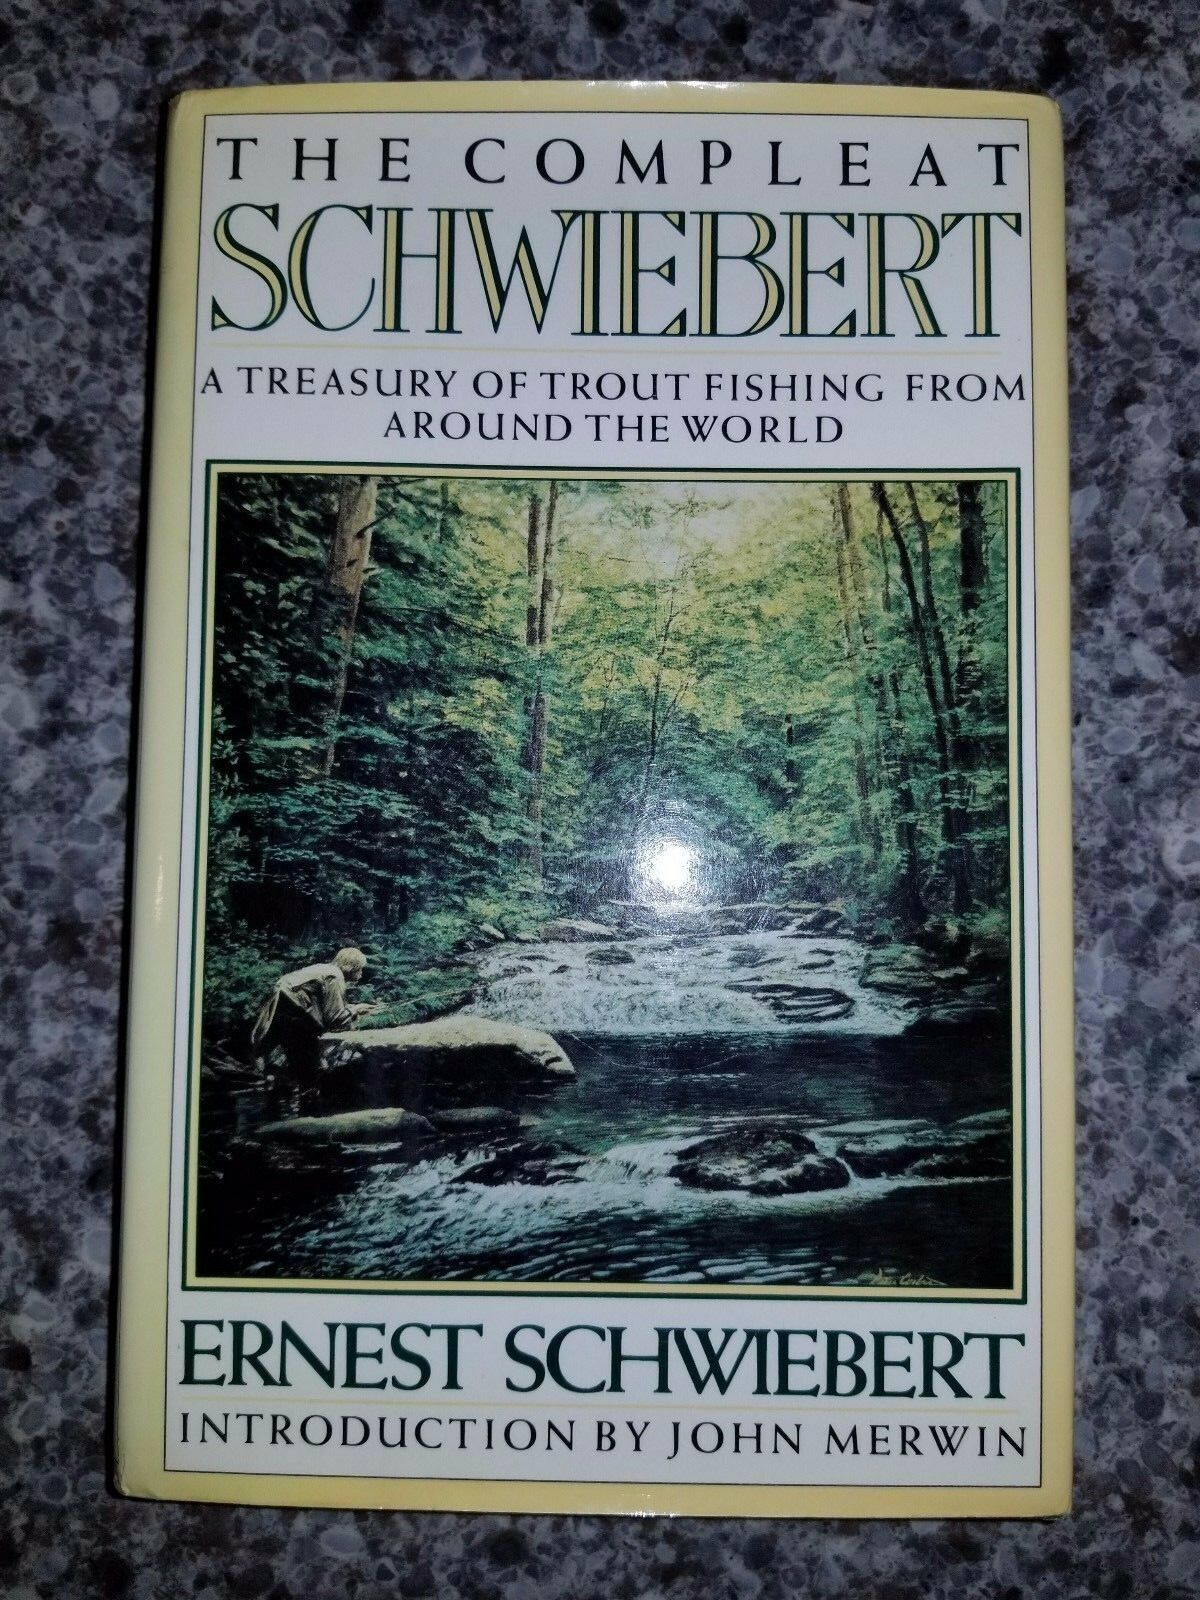 The Complete Schwiebert first 1990